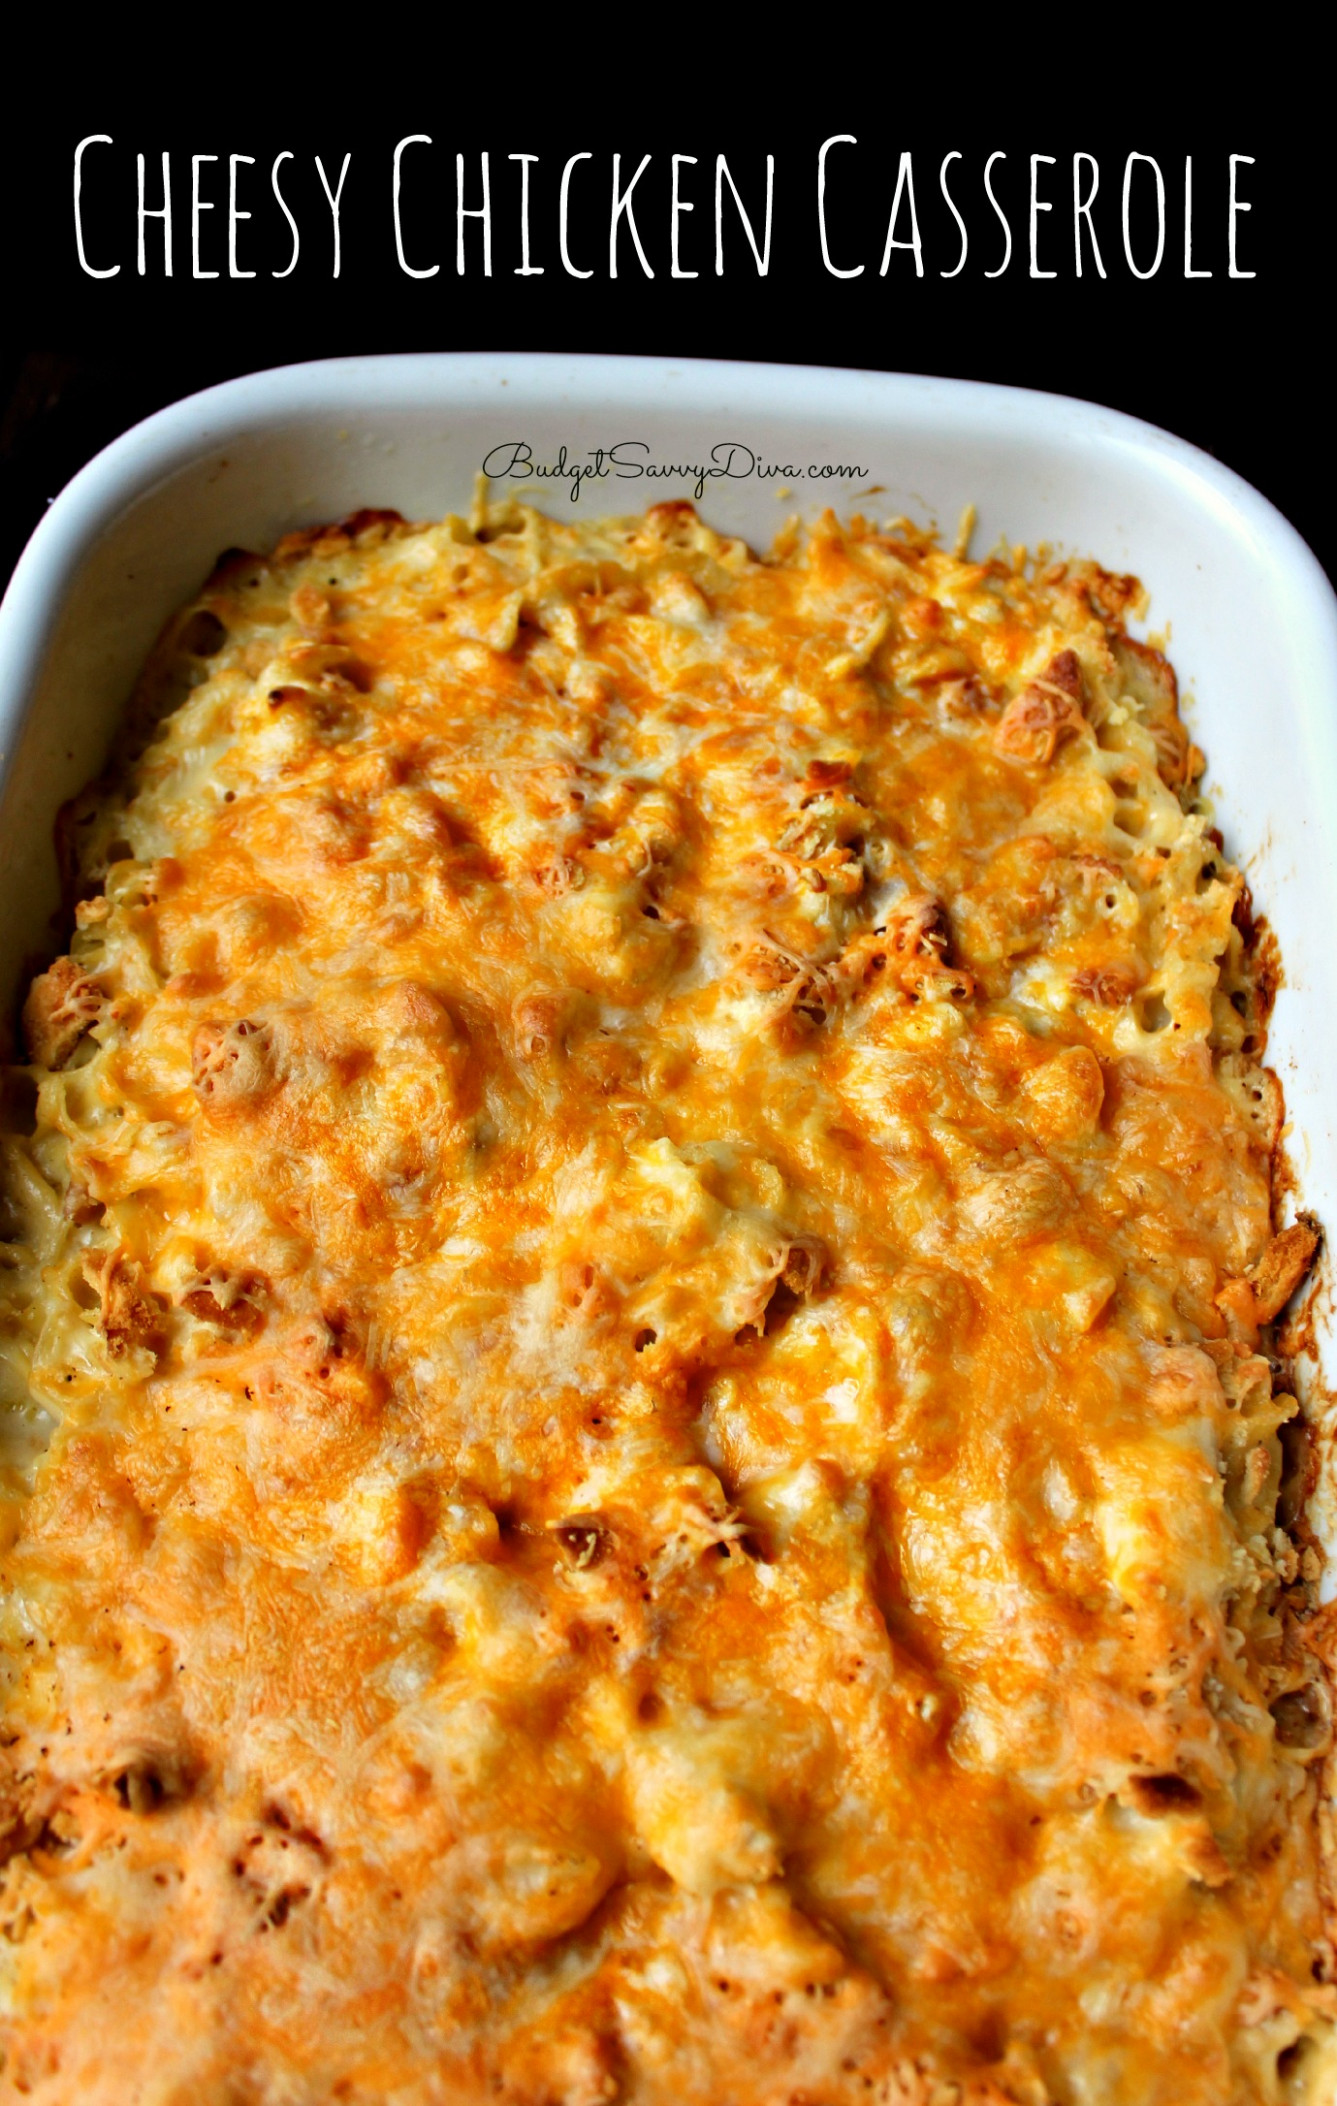 Cheesy Chicken Casserole Recipe - recipes easy chicken casserole